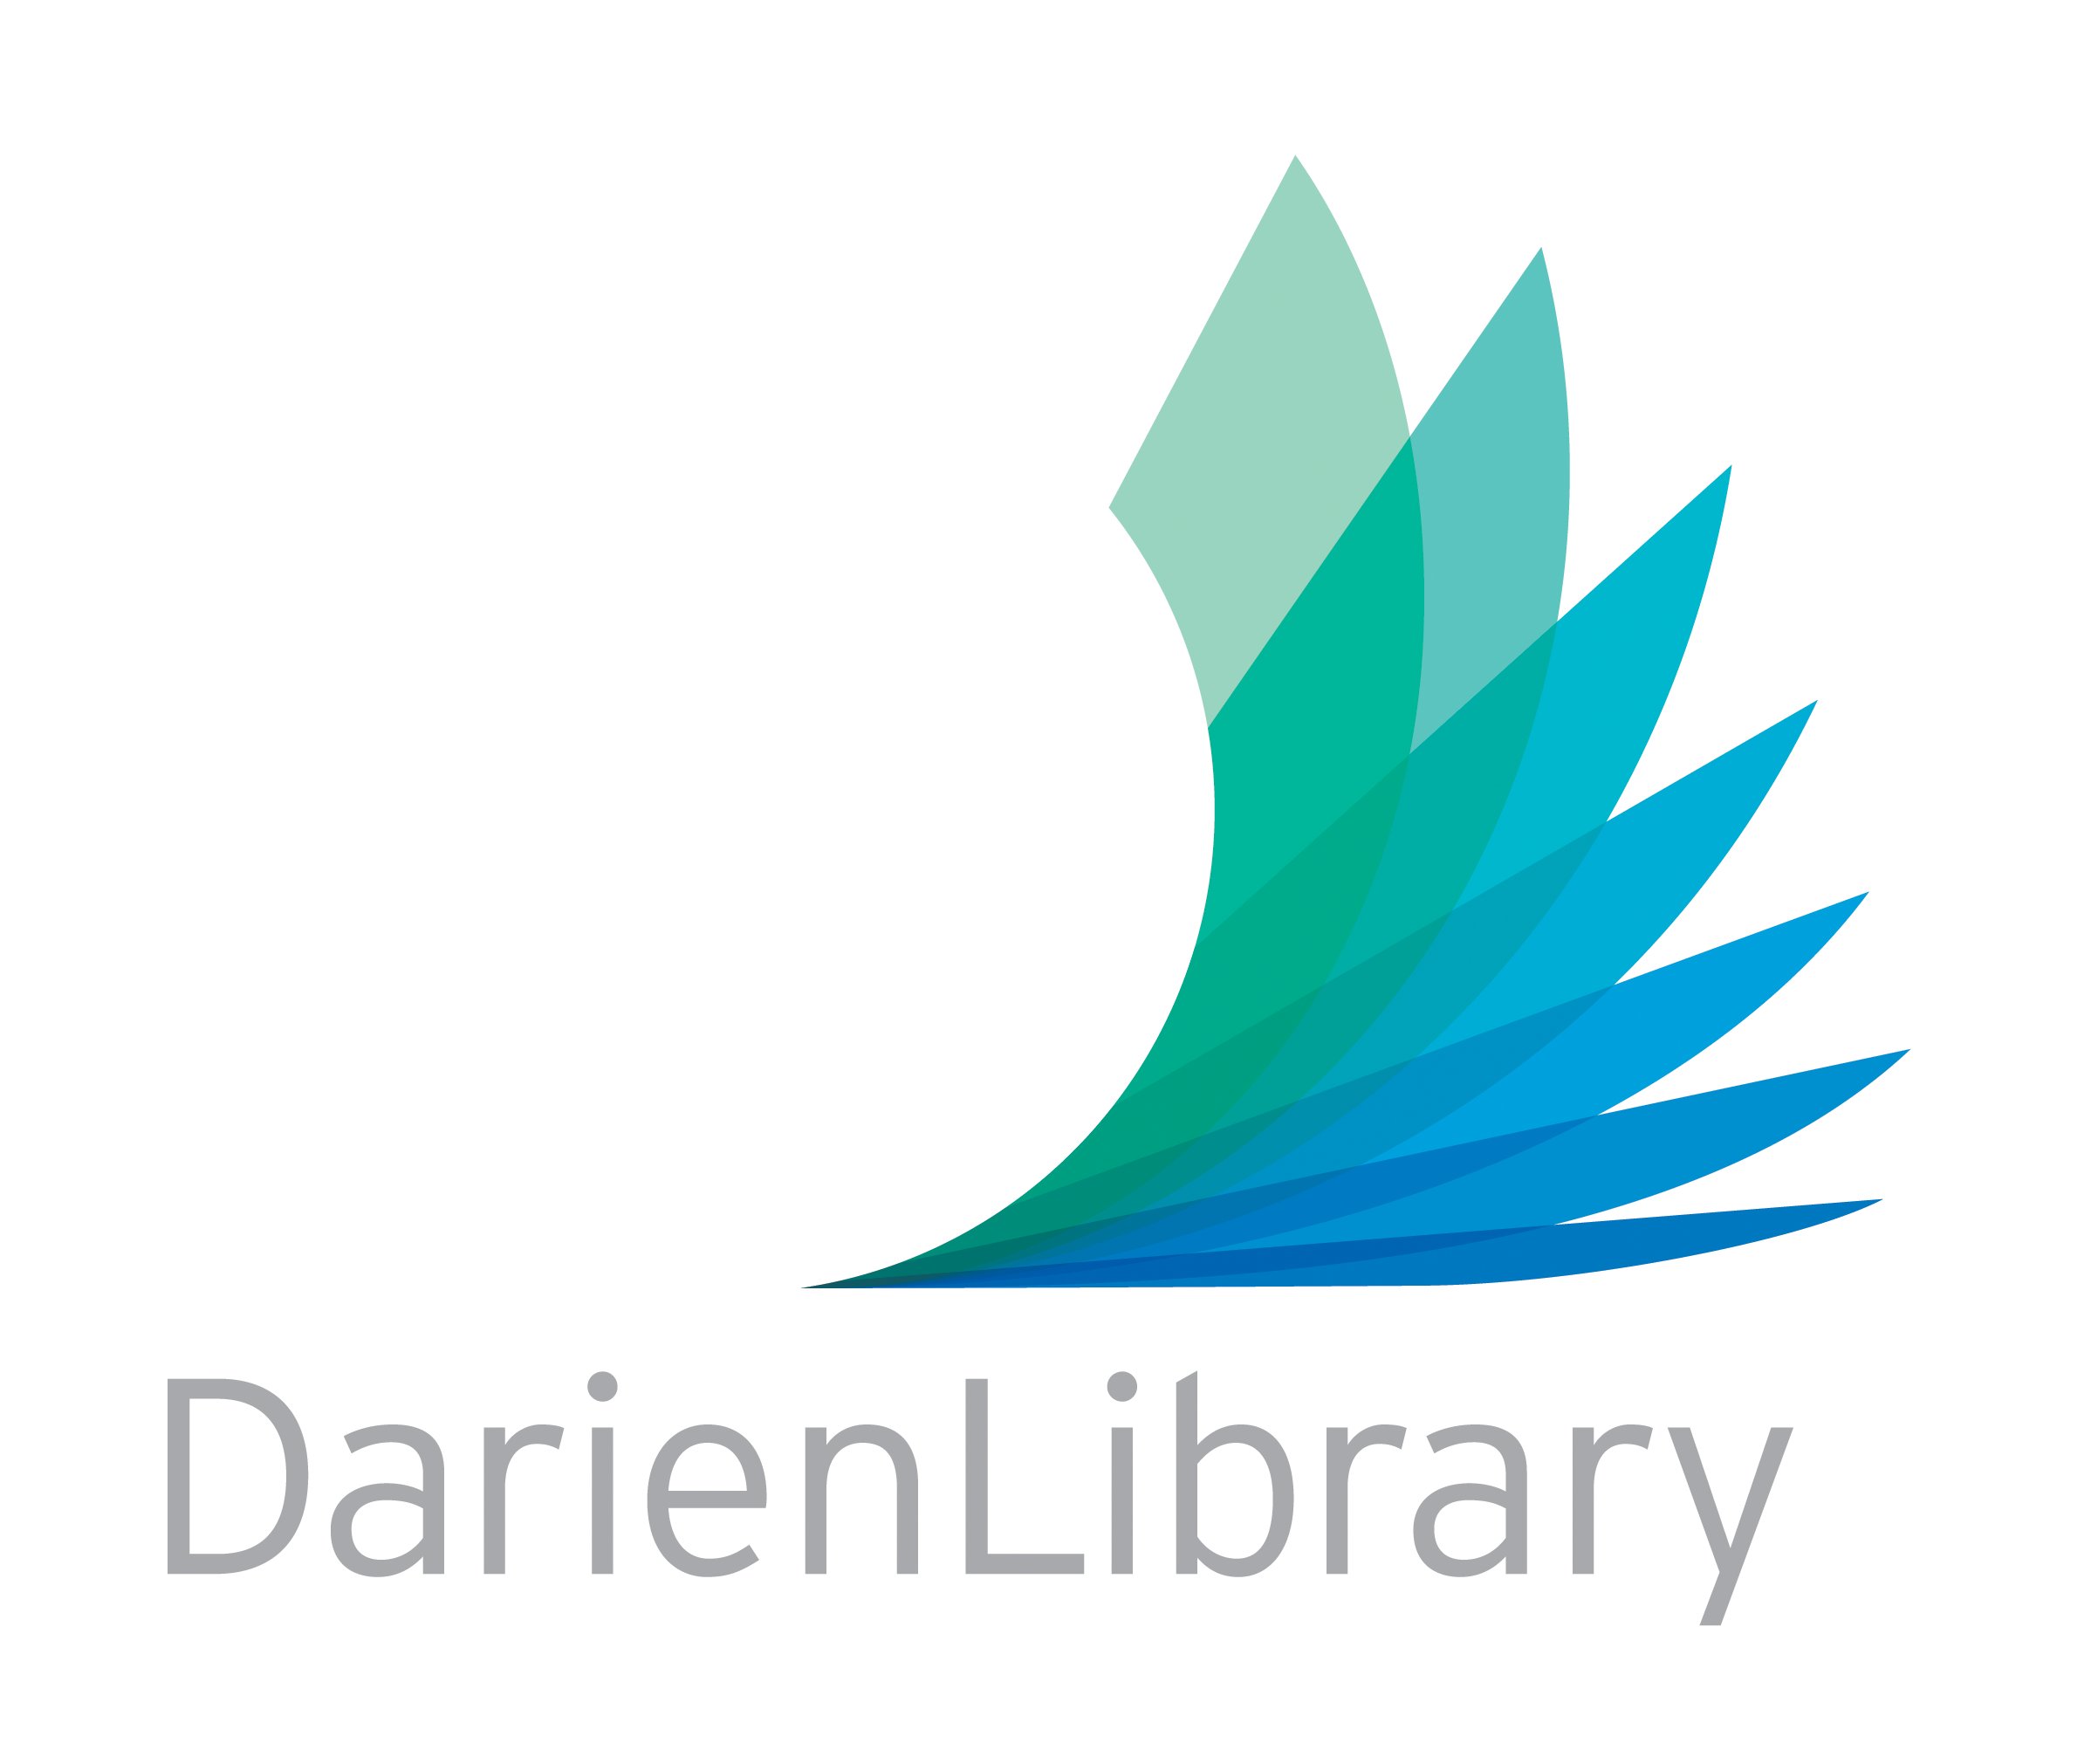 Project image 1 for Identity, Darien Library